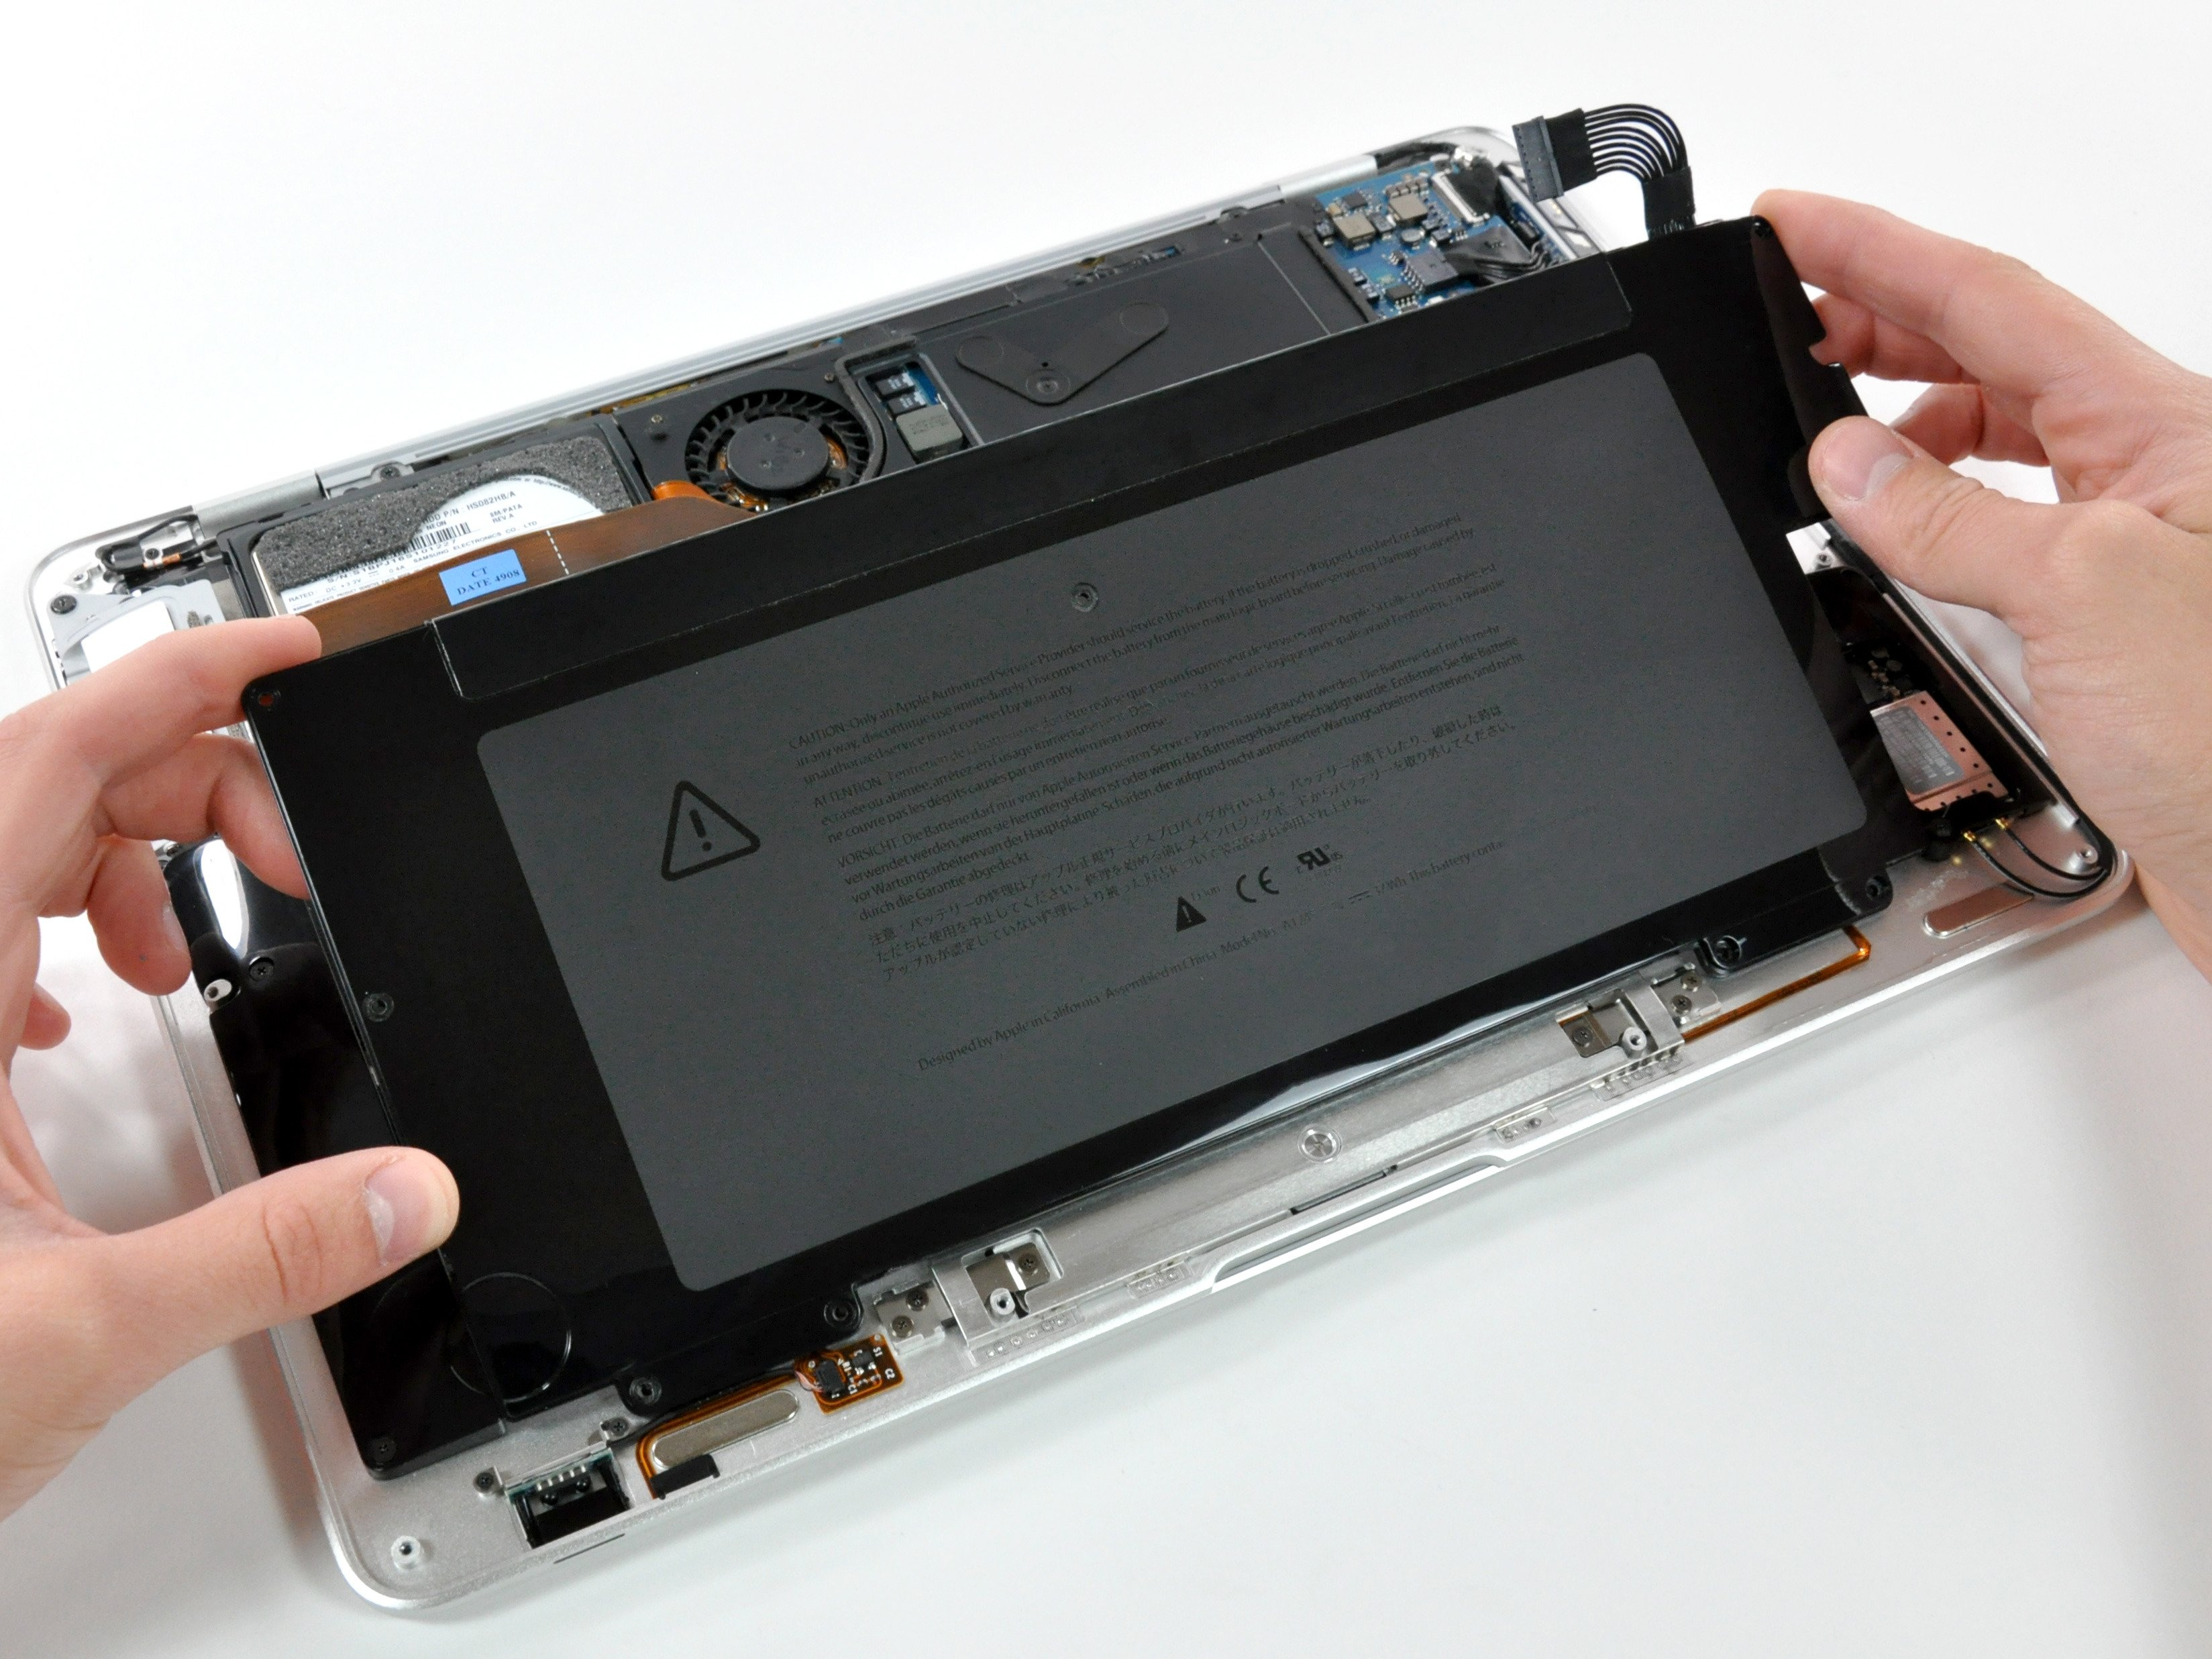 Macbook Air Models A1237 And A1304 Battery Replacement Ifixit Repair Guide